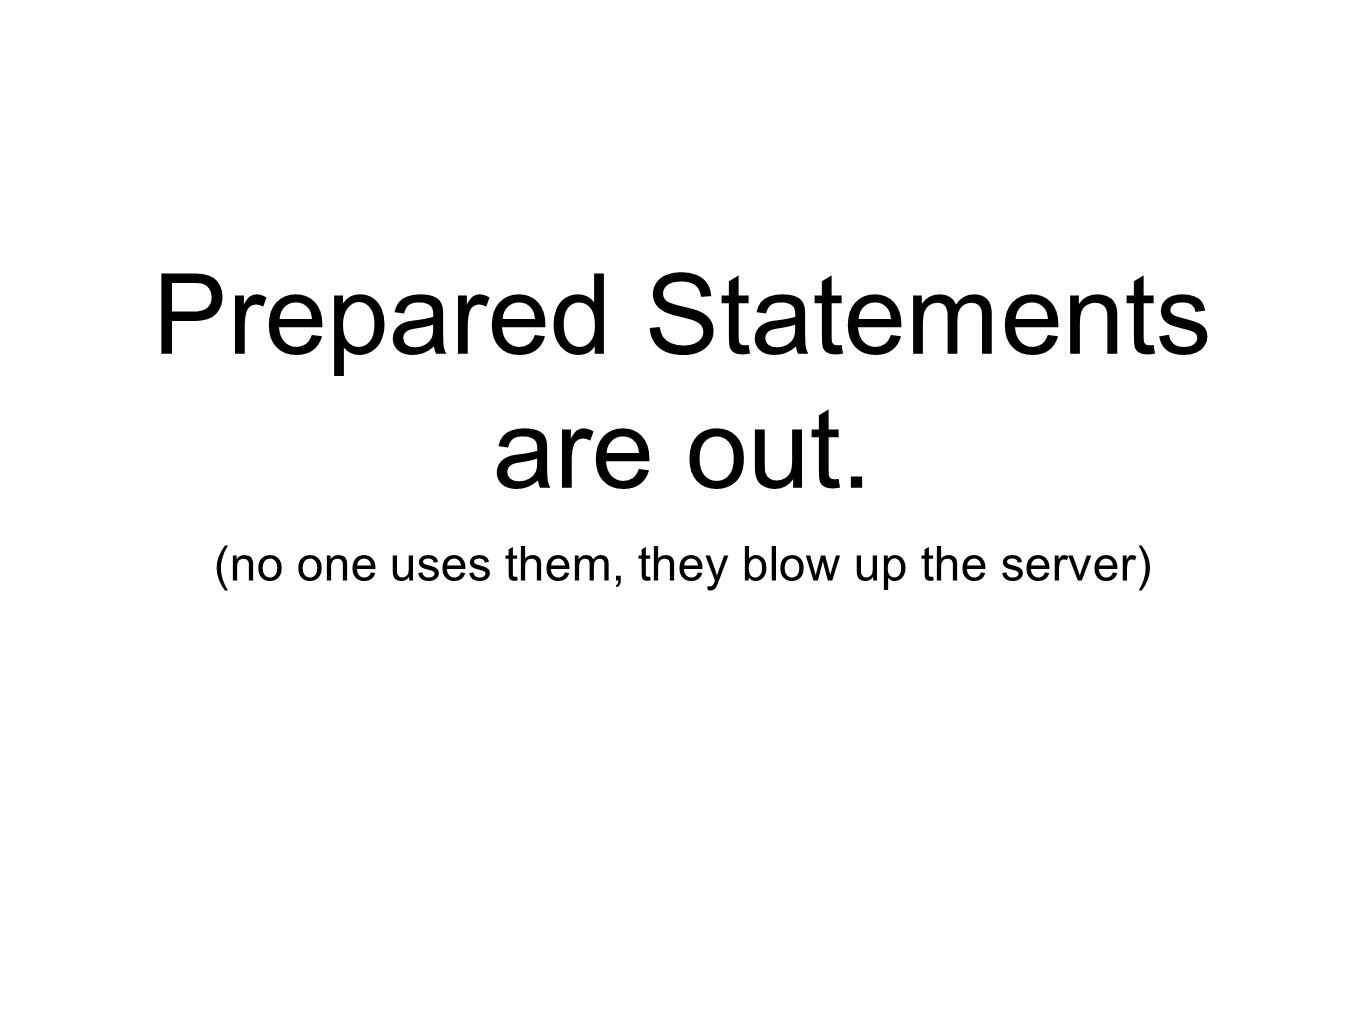 Prepared Statements are out. (no one uses them, they blow up the server)